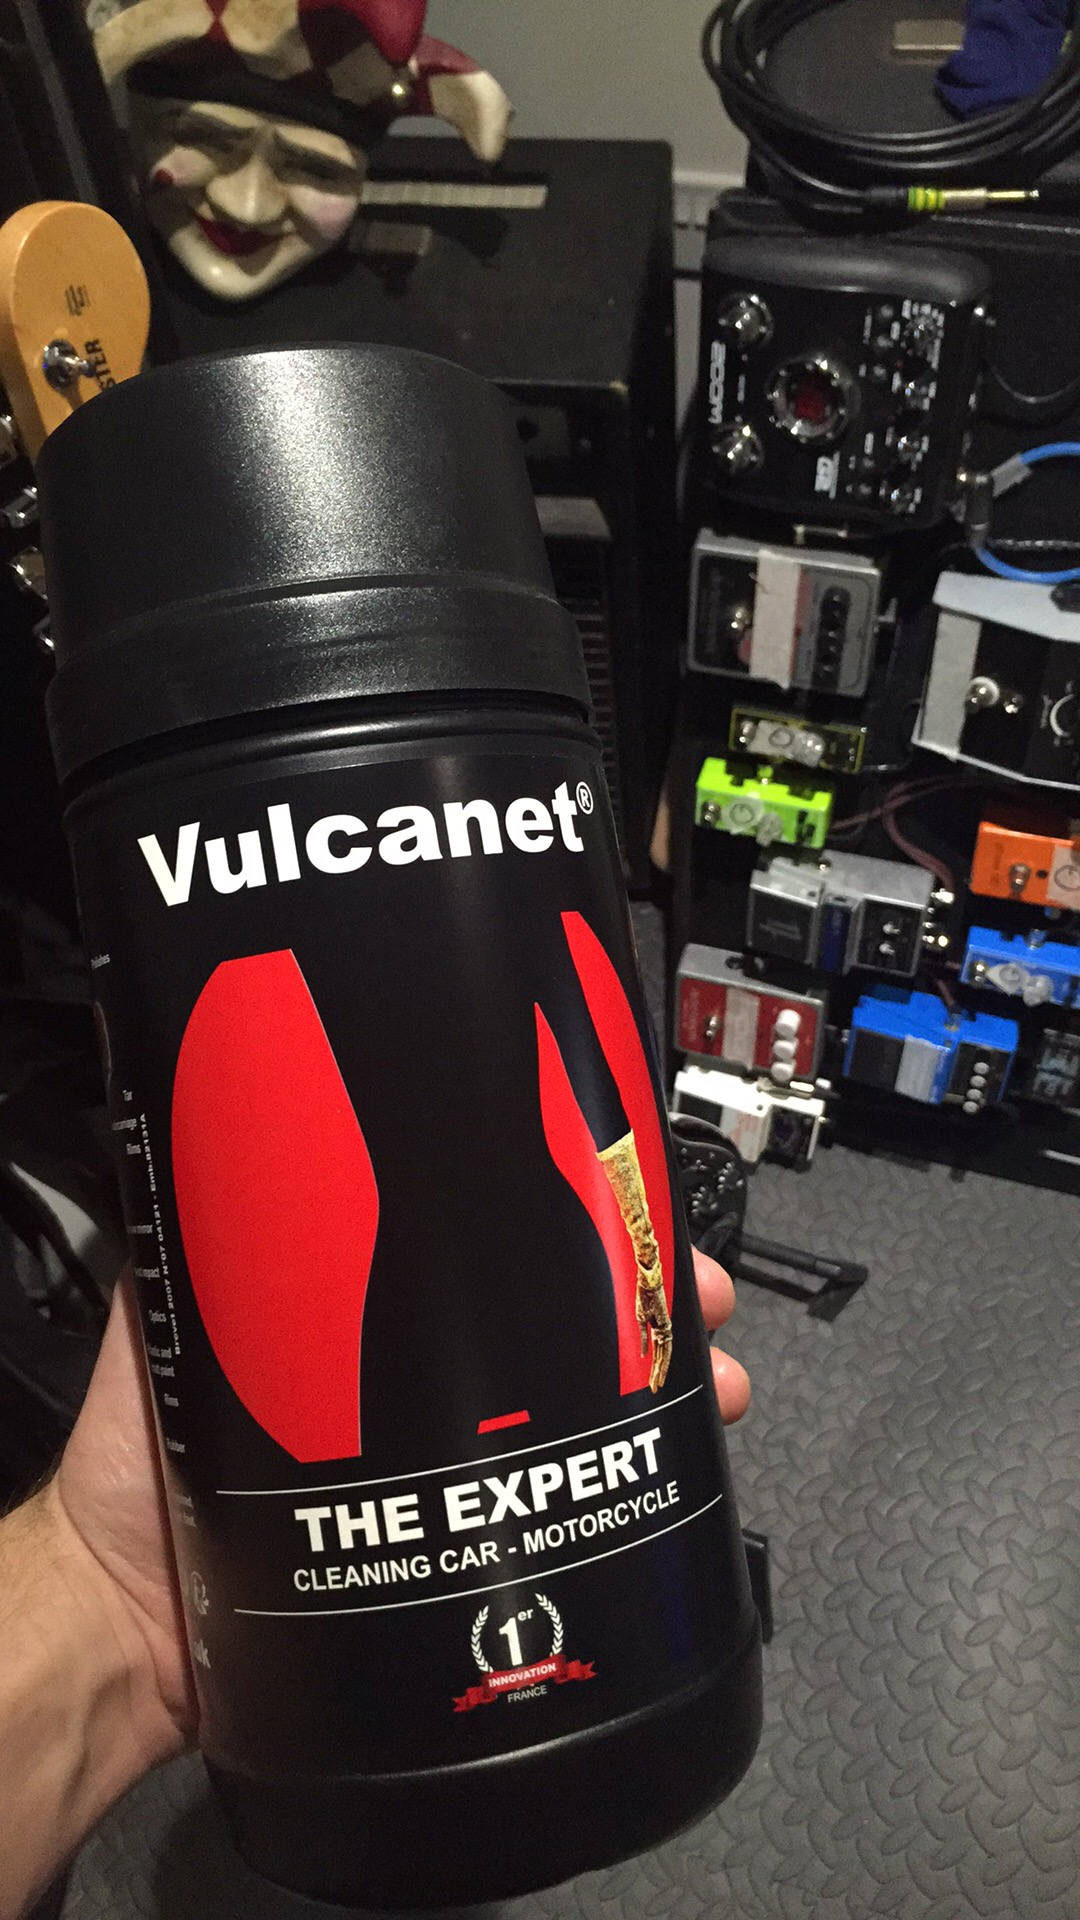 Vulcanet Cleaning Wipes Superb Cleaning For Car And